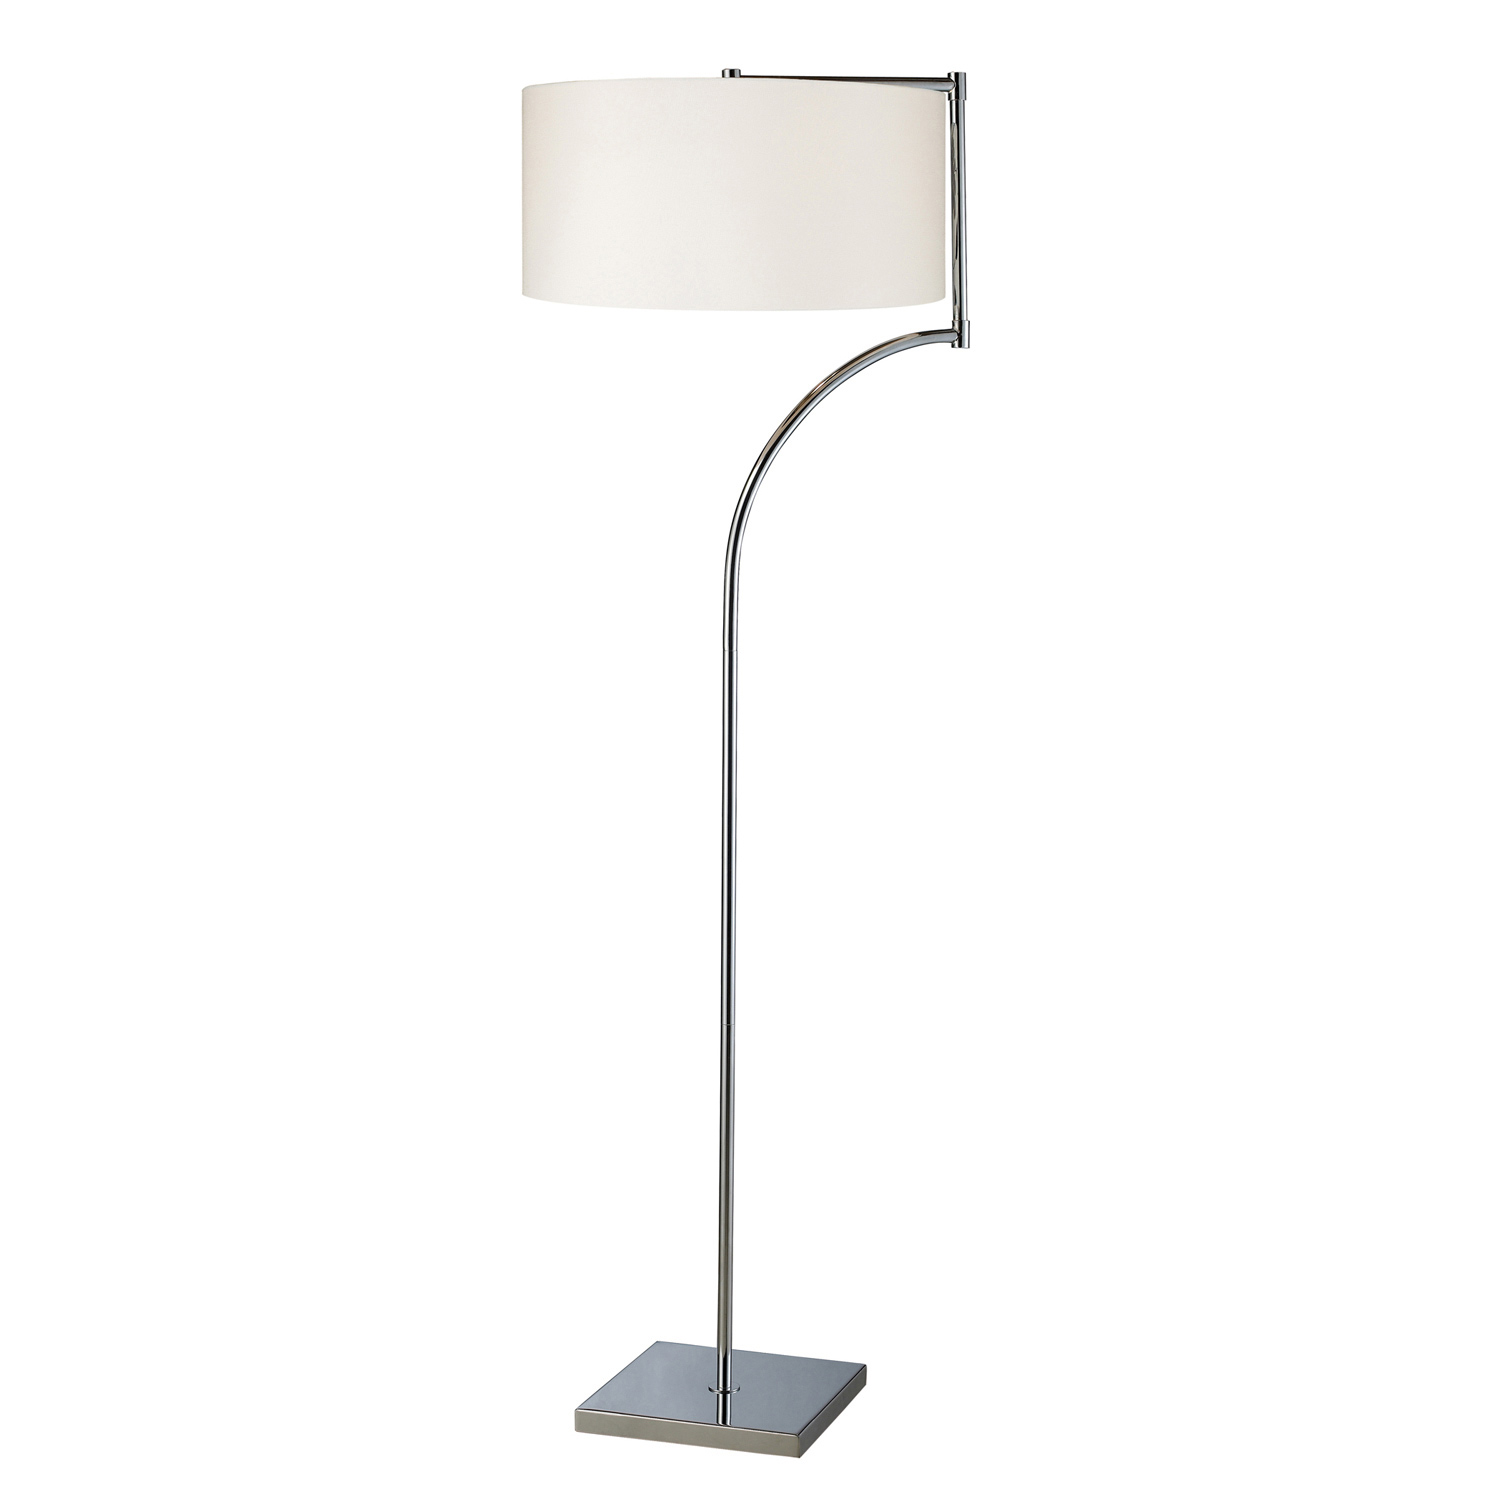 Elk Lighting D1832 Lancaster Floor Lamp - Chrome